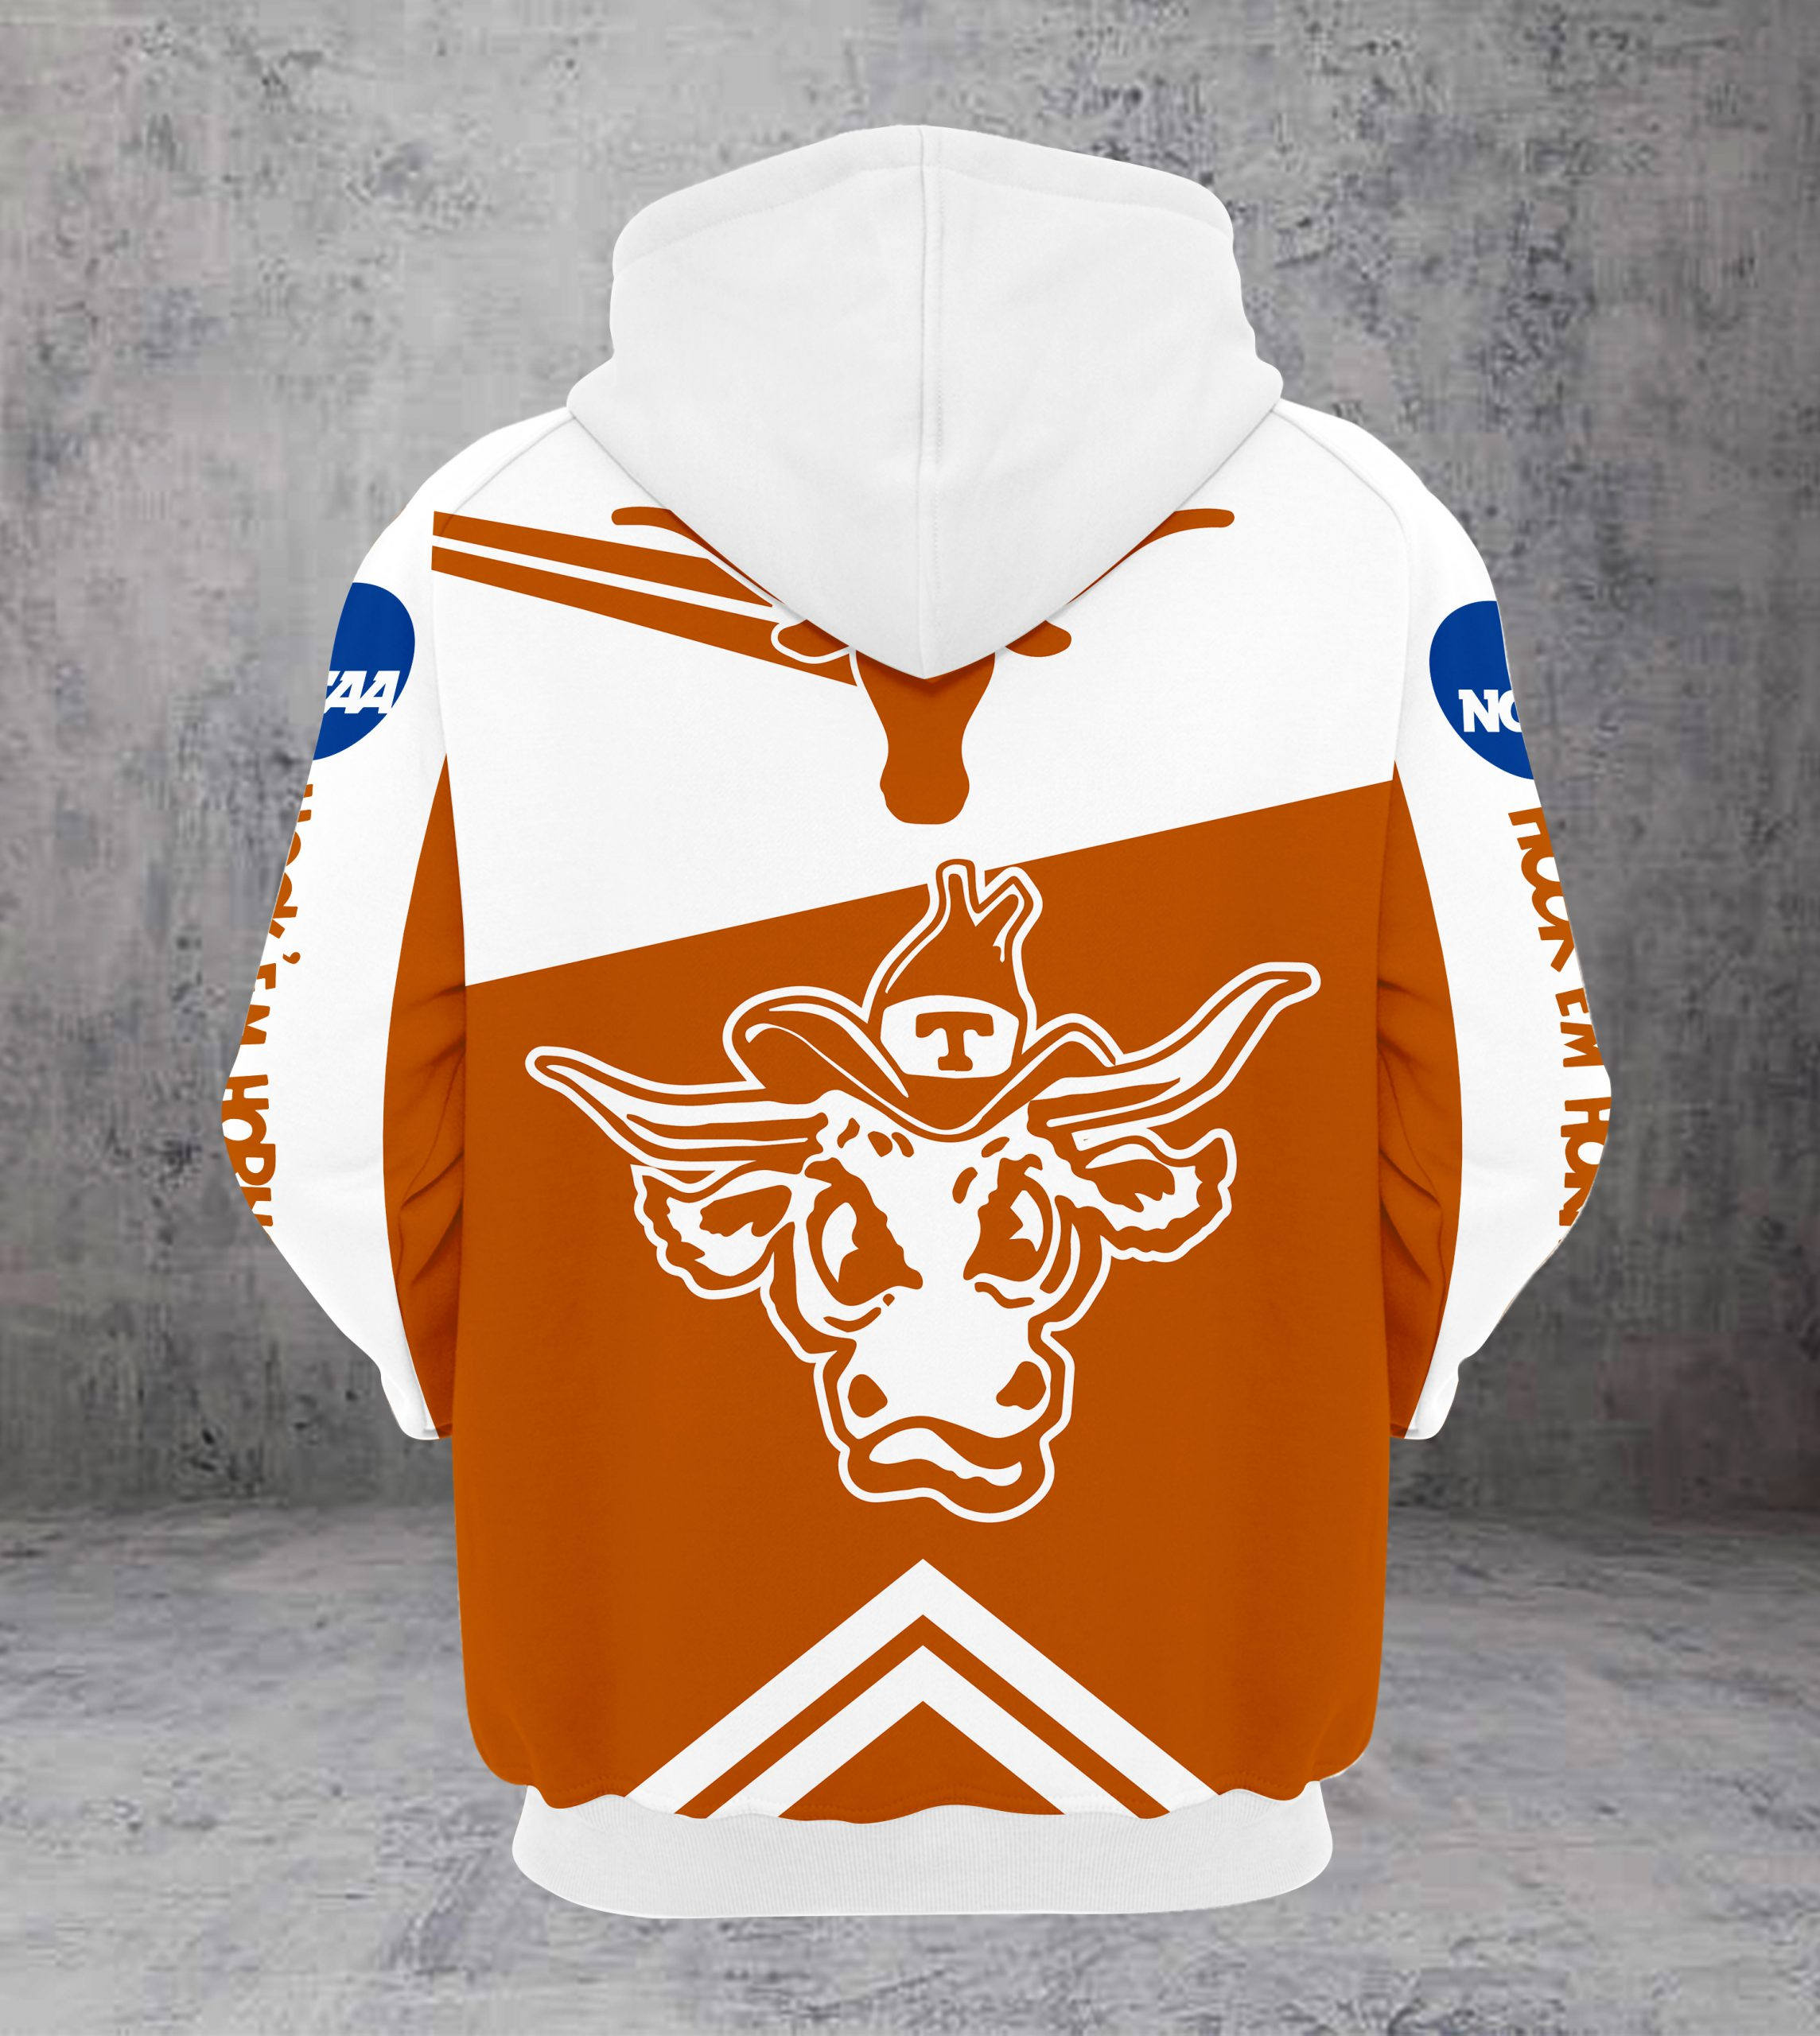 2019 alamo bowl champions texas longhorns all over printed hoodie - back